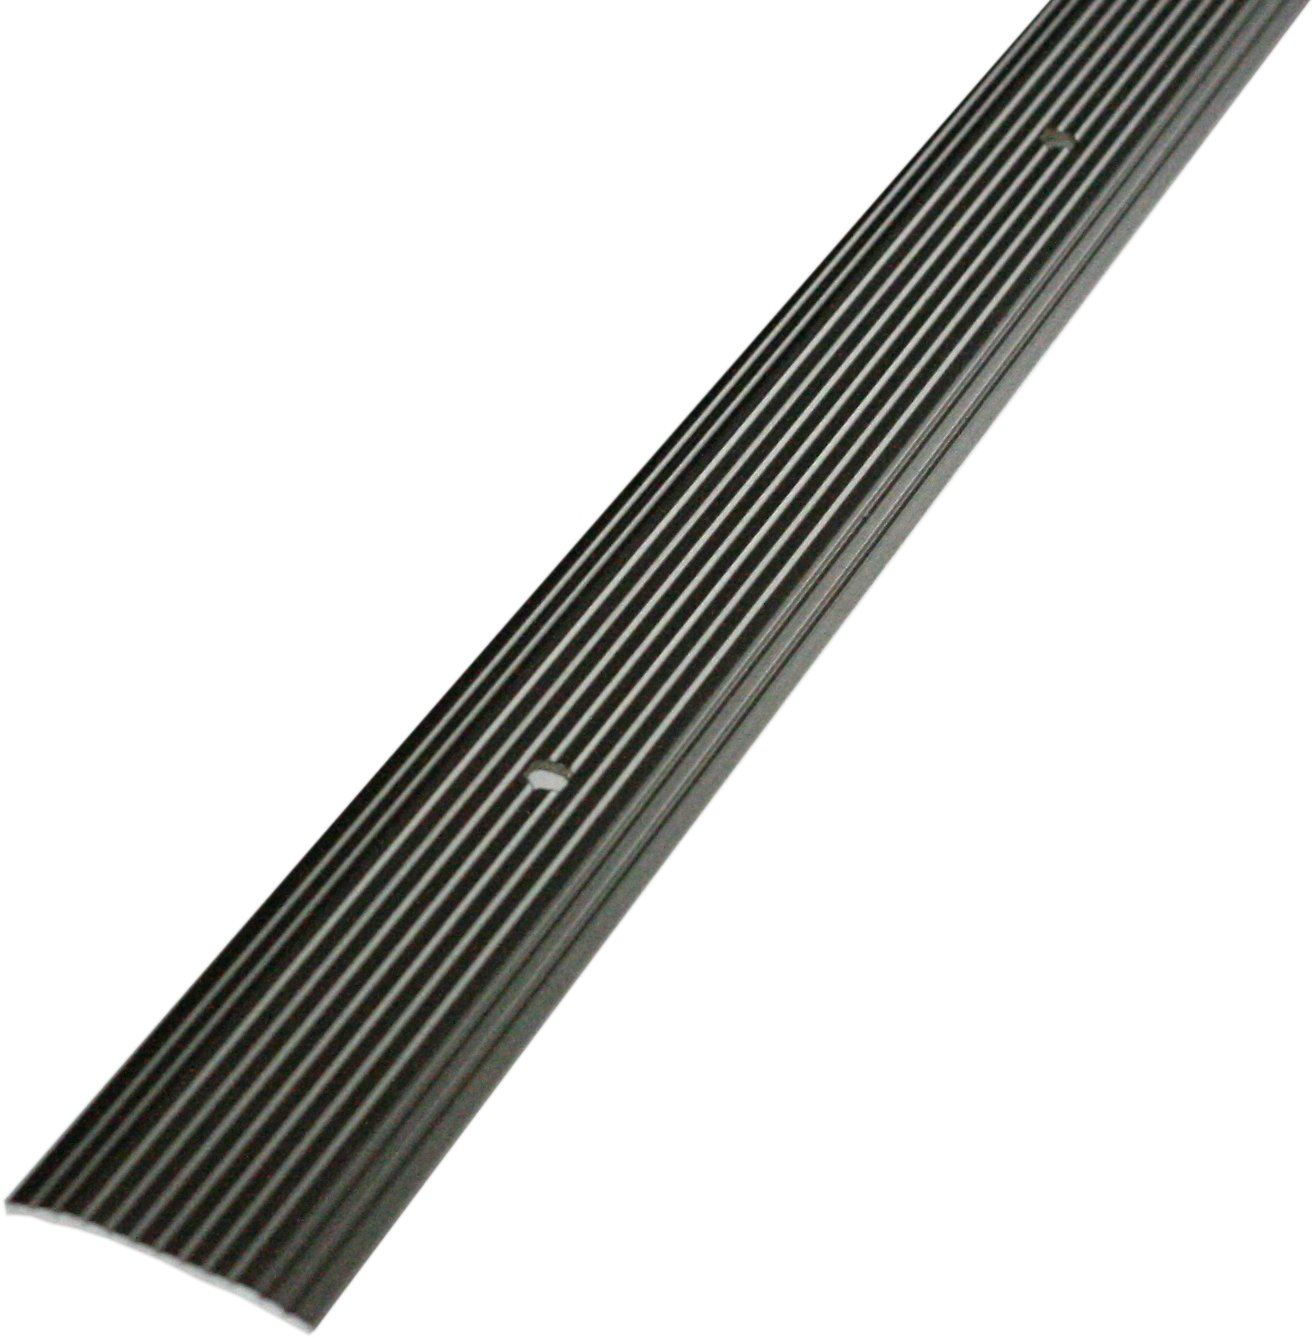 Pewter M-D Building Products 43872 M-D Wide Fluted Seam Binder 1-1//4 in W X 36 in L X 0.1 in H